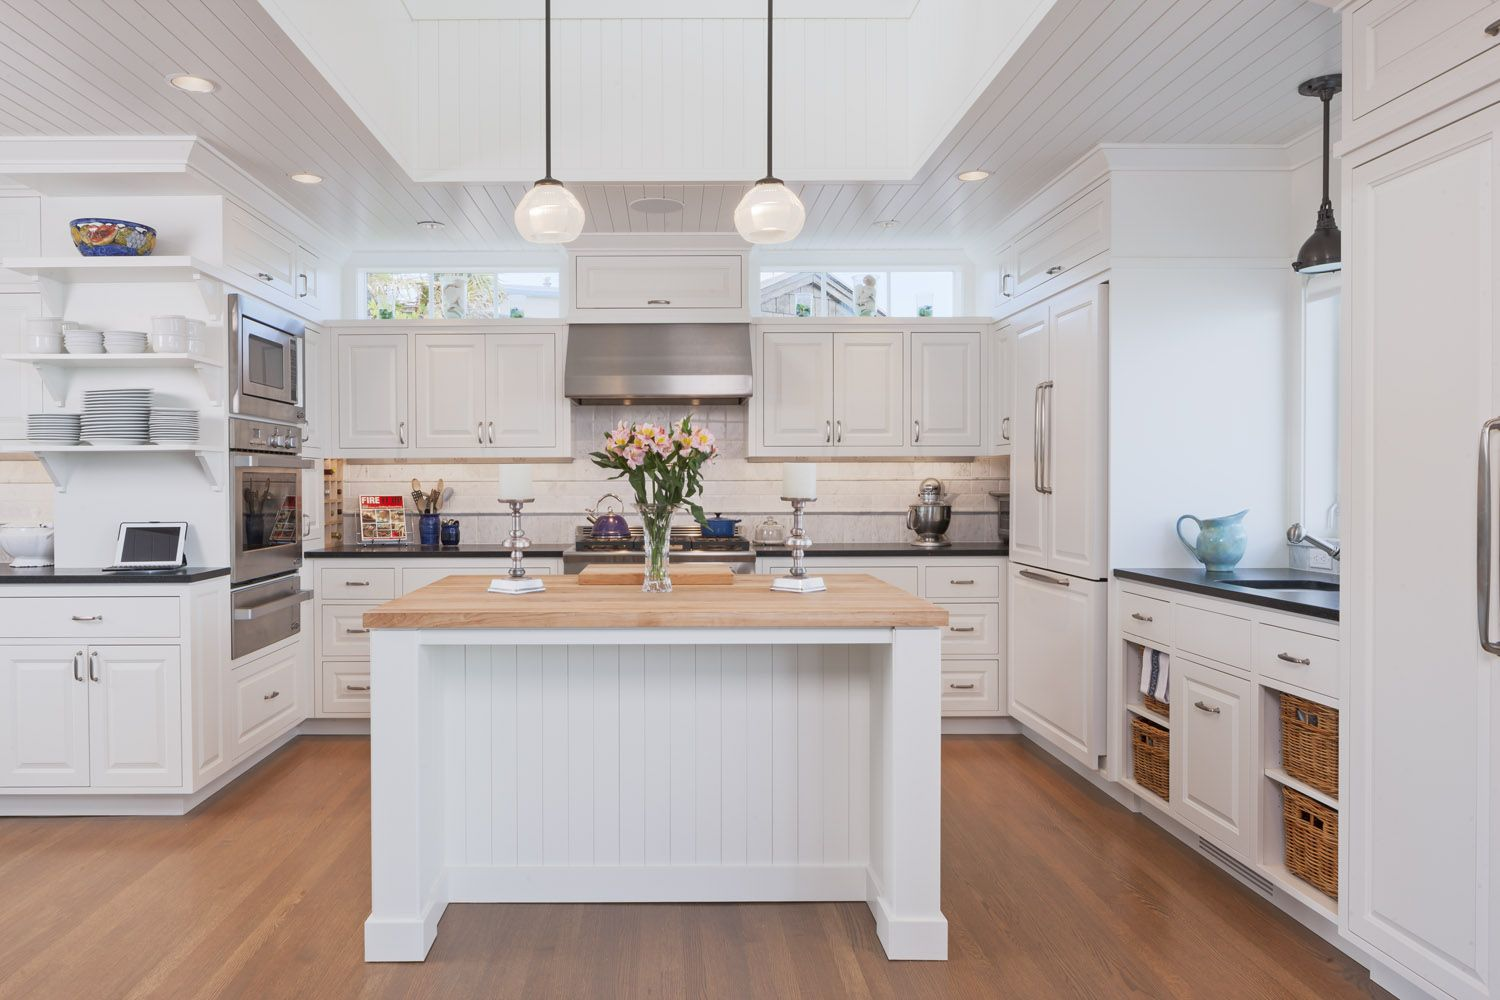 Kitchen With Transom Windows Cupola Above Above Kitchen Cabinets Kitchen Models Kitchen Interior